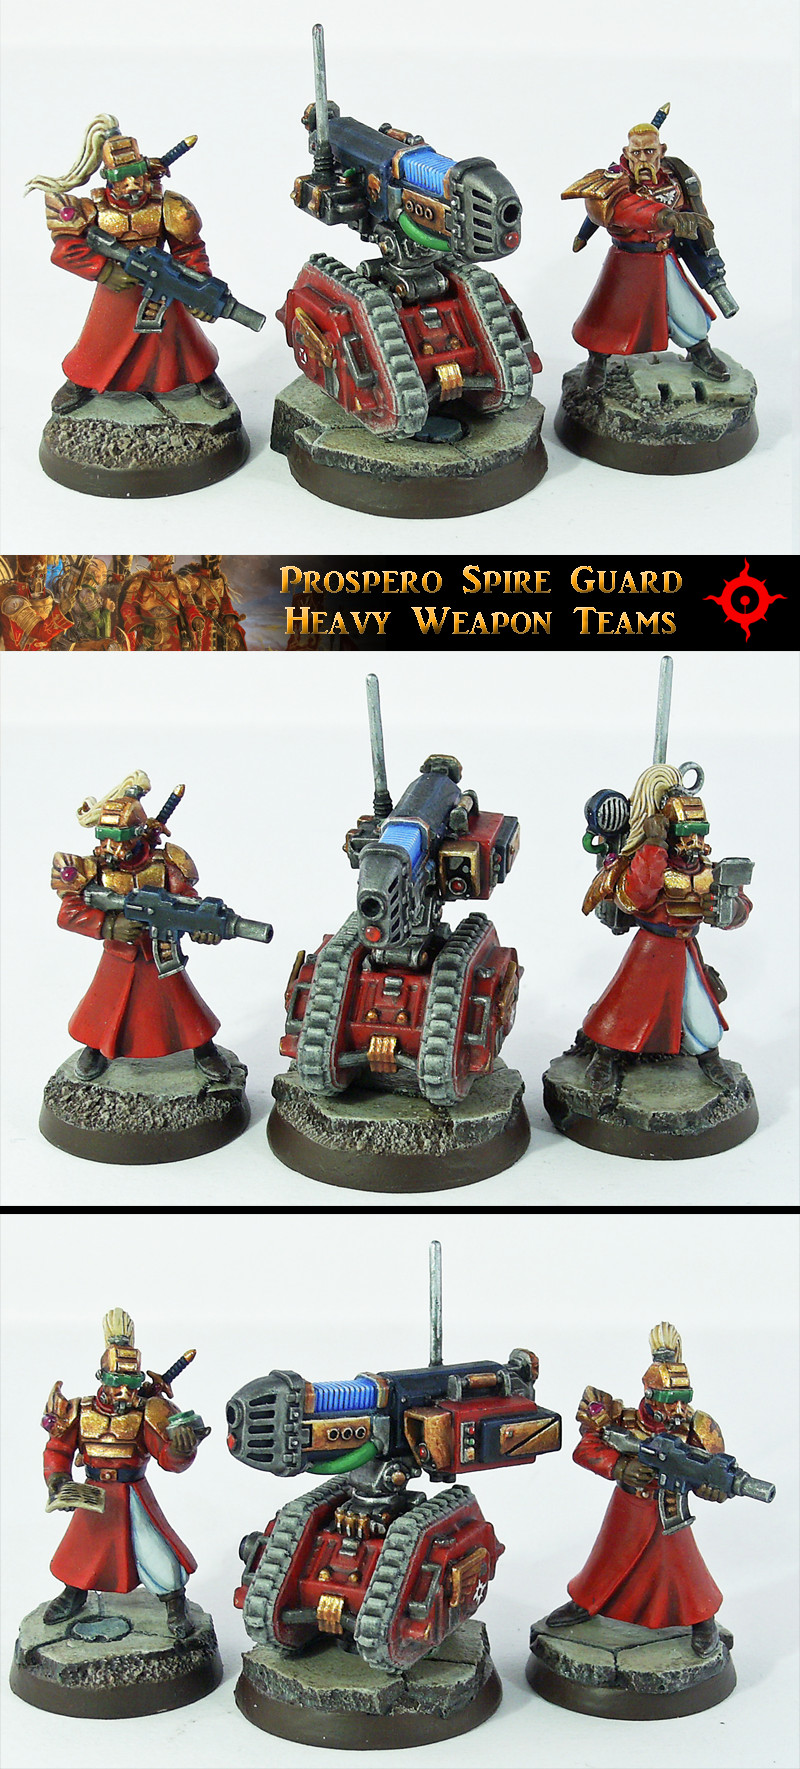 Prospero Spire Guard Heavy Weapon Teams by Proiteus